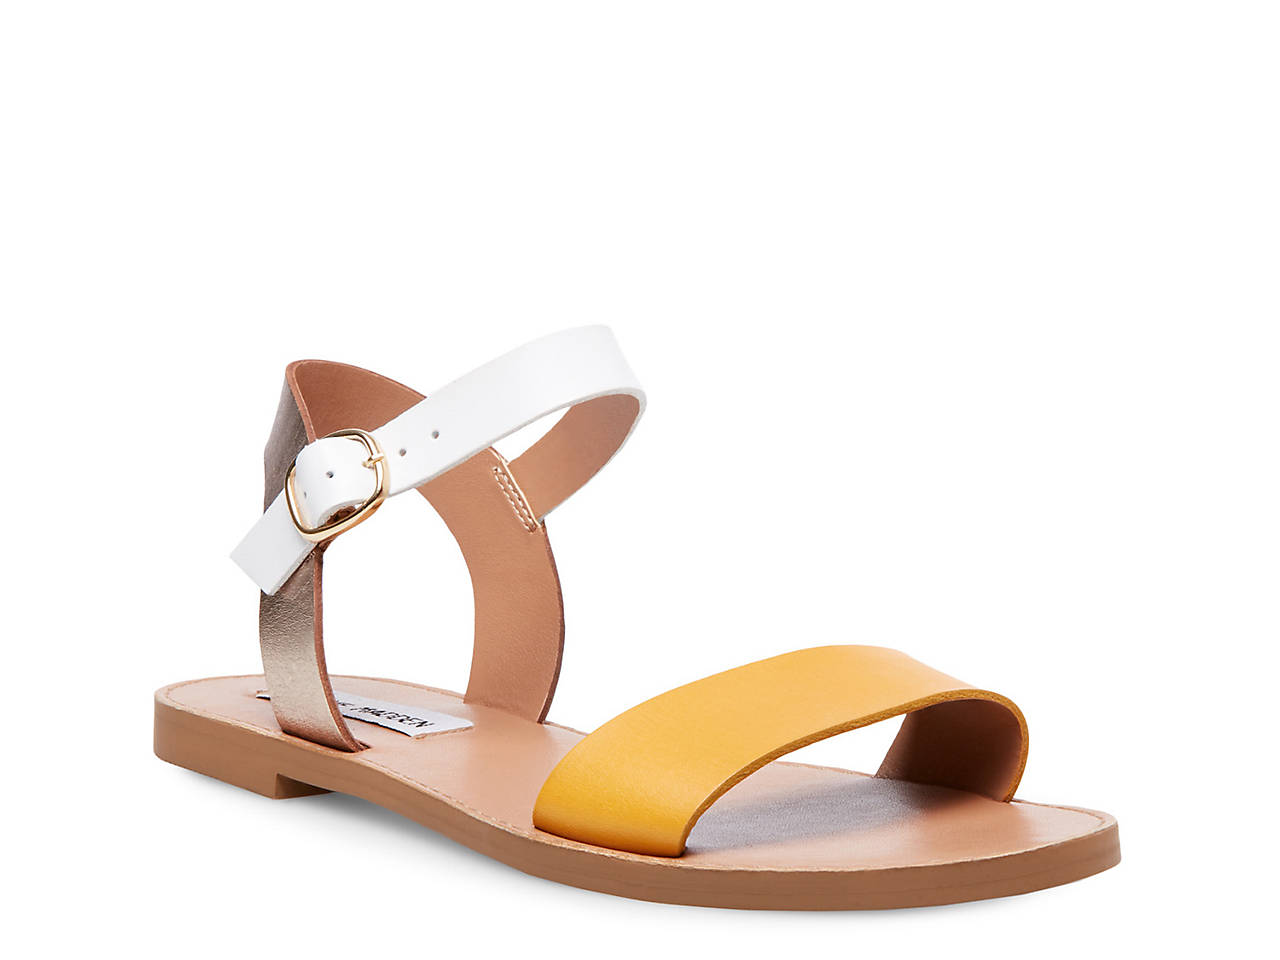 abd46bb0c86 Steve Madden Donddi Sandal Women s Shoes